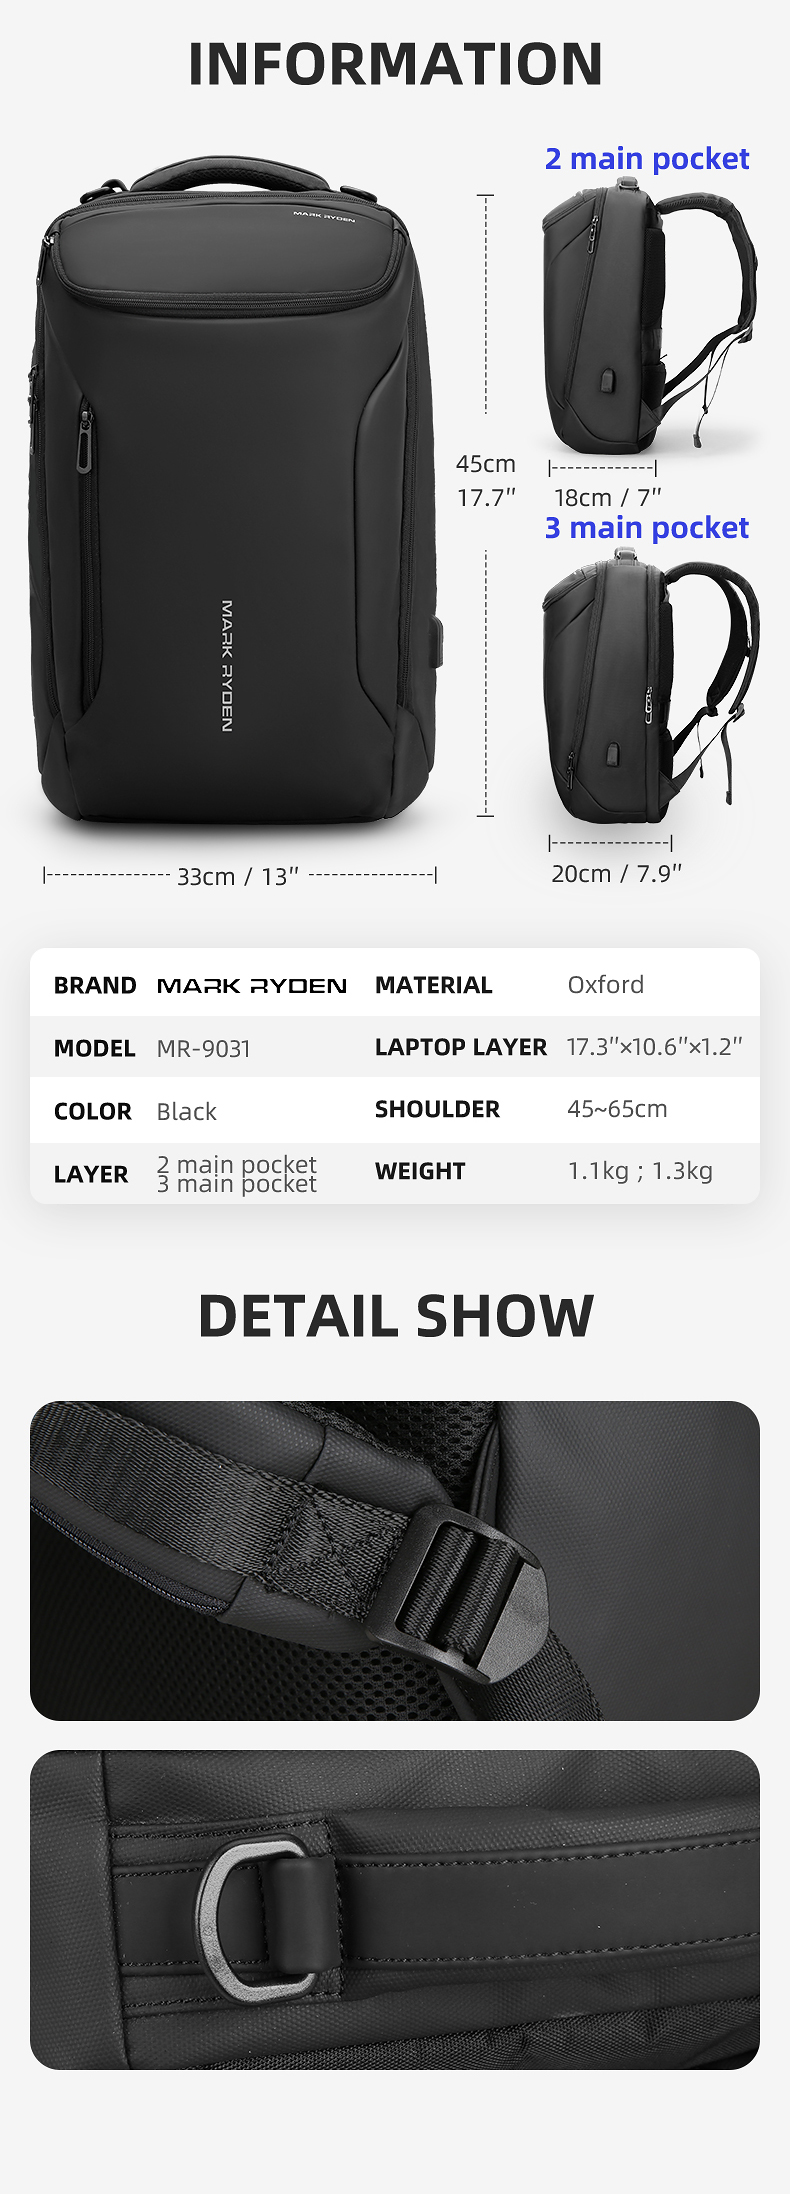 Hf2d312592e1e49bc8003fec91eec88f6F - Mark Ryden New Anti-thief Fashion Men Backpack Multifunctional Waterproof 15.6 inch Laptop Bag Man USB Charging Travel Bag